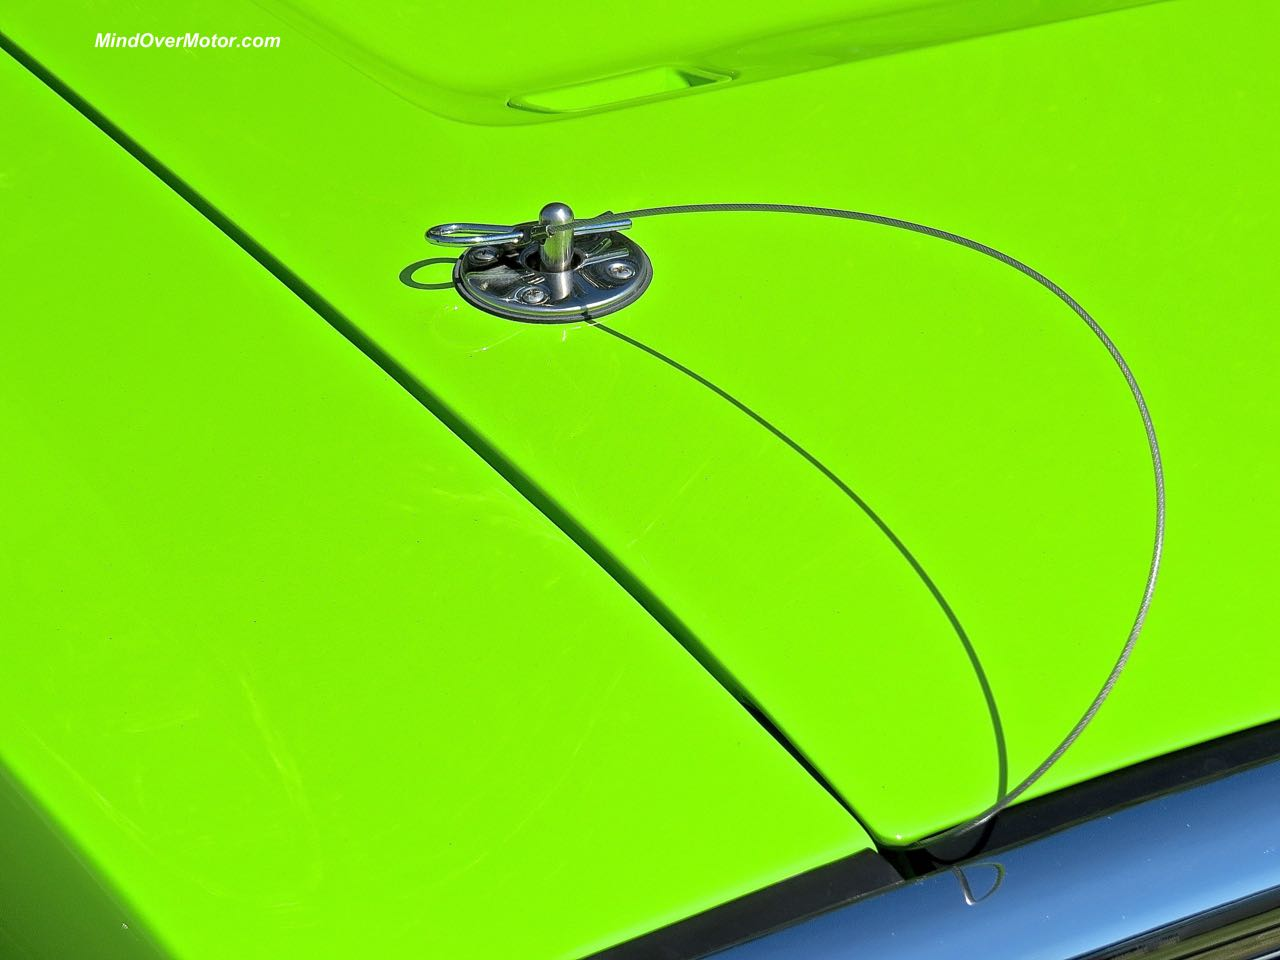 1970 Dodge Charger R:T Hood Pin Detail